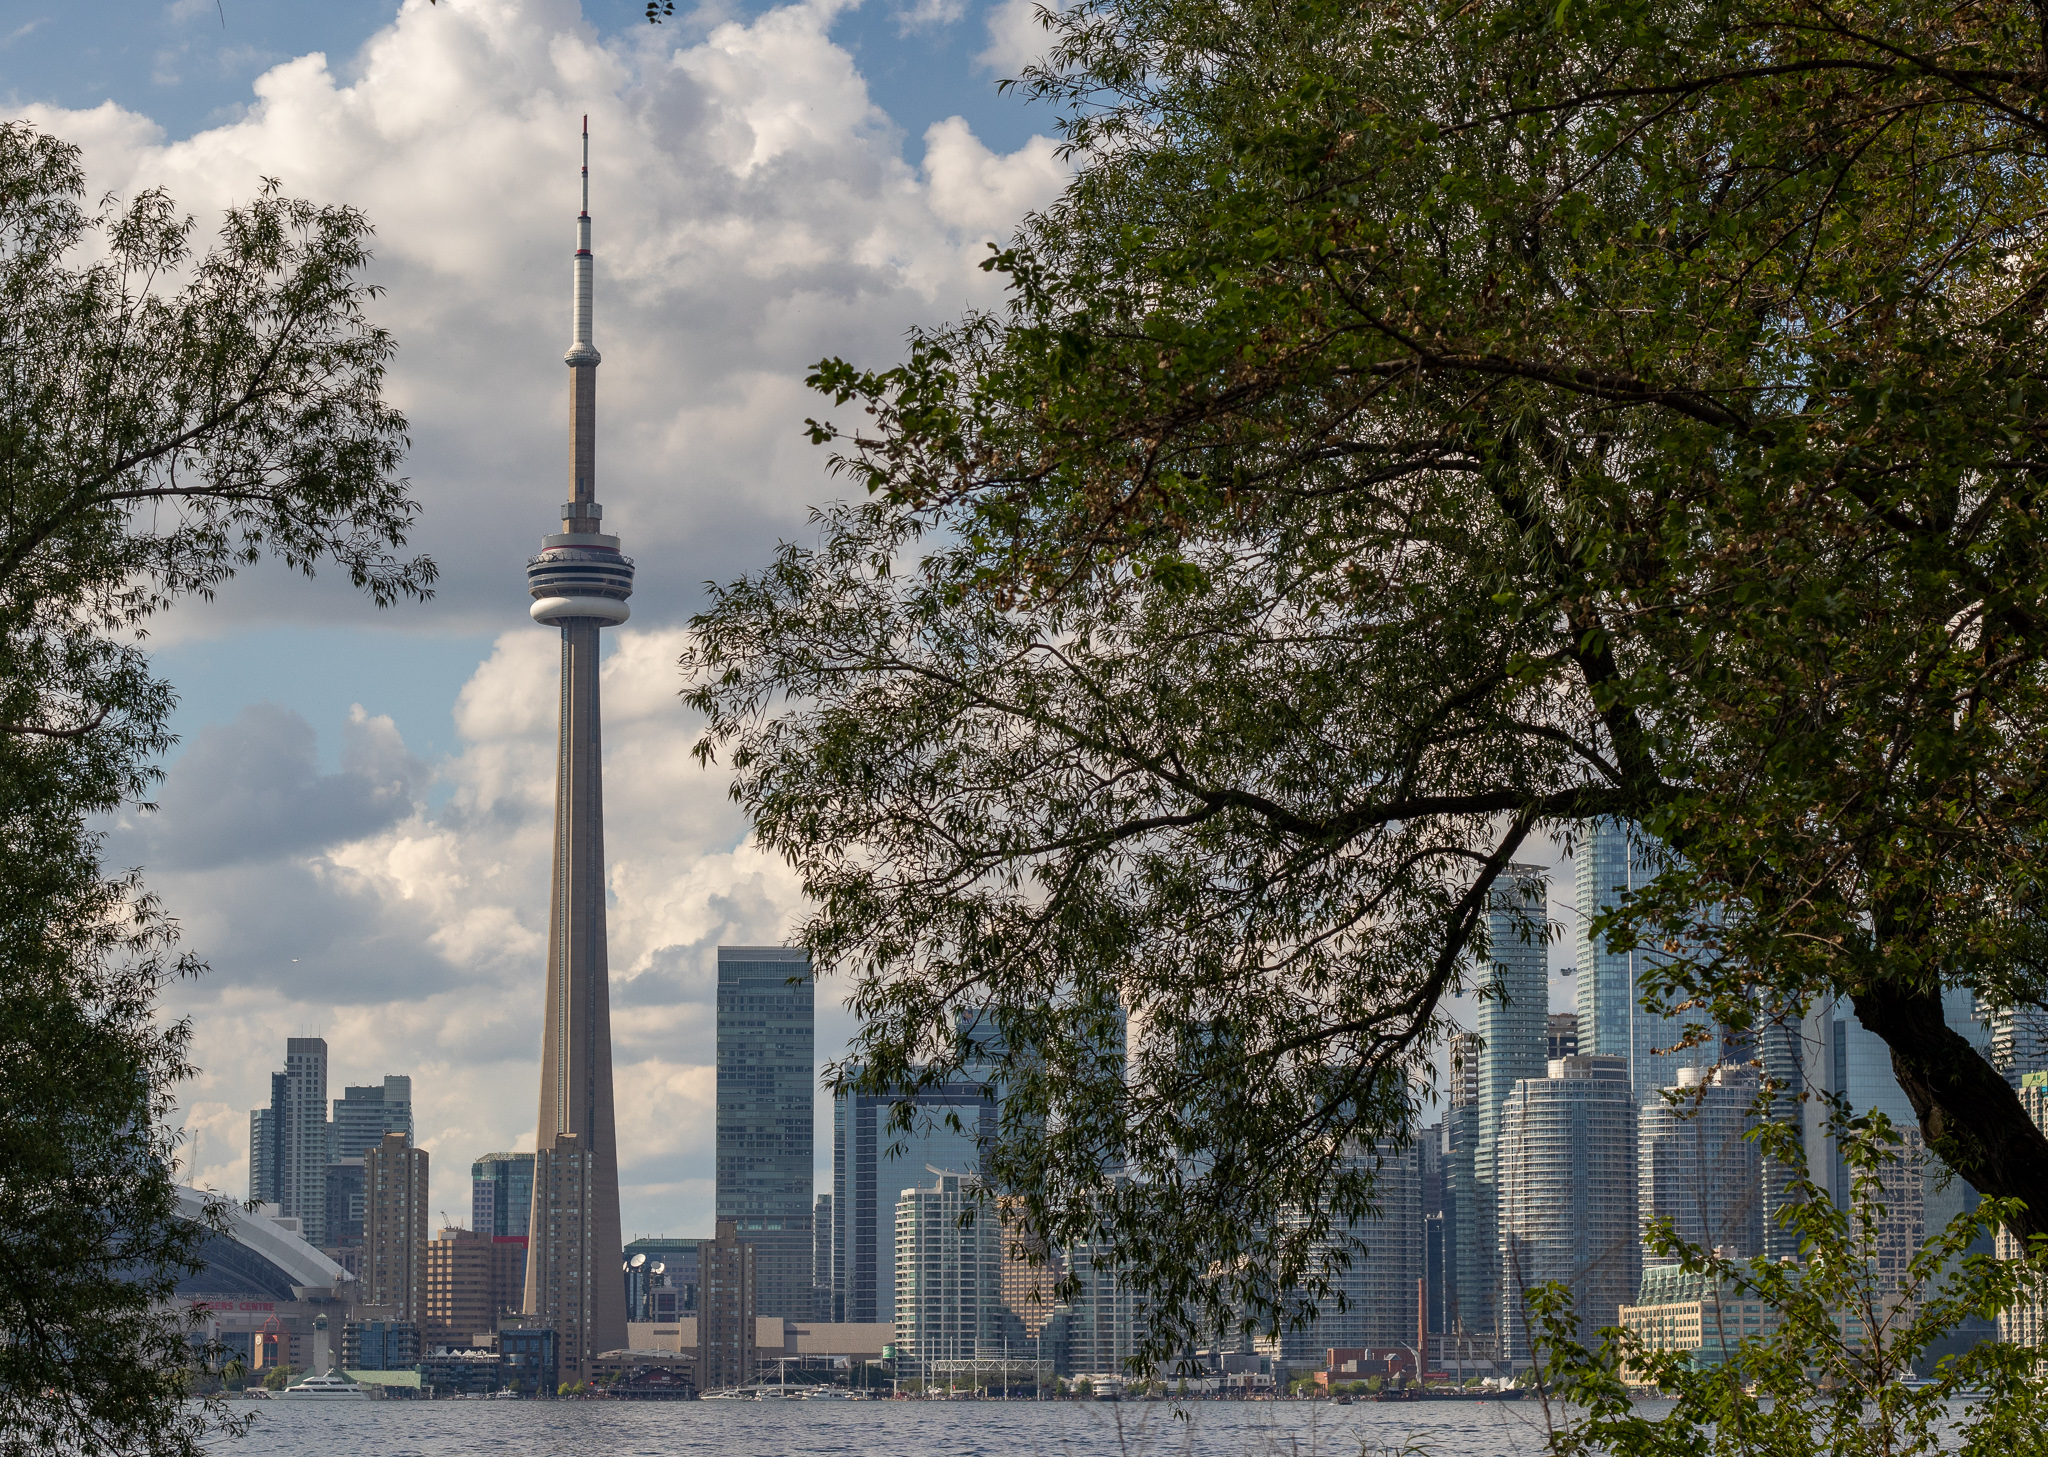 From the Toronto Islands, visitors have a wonderful view of the metropolis.